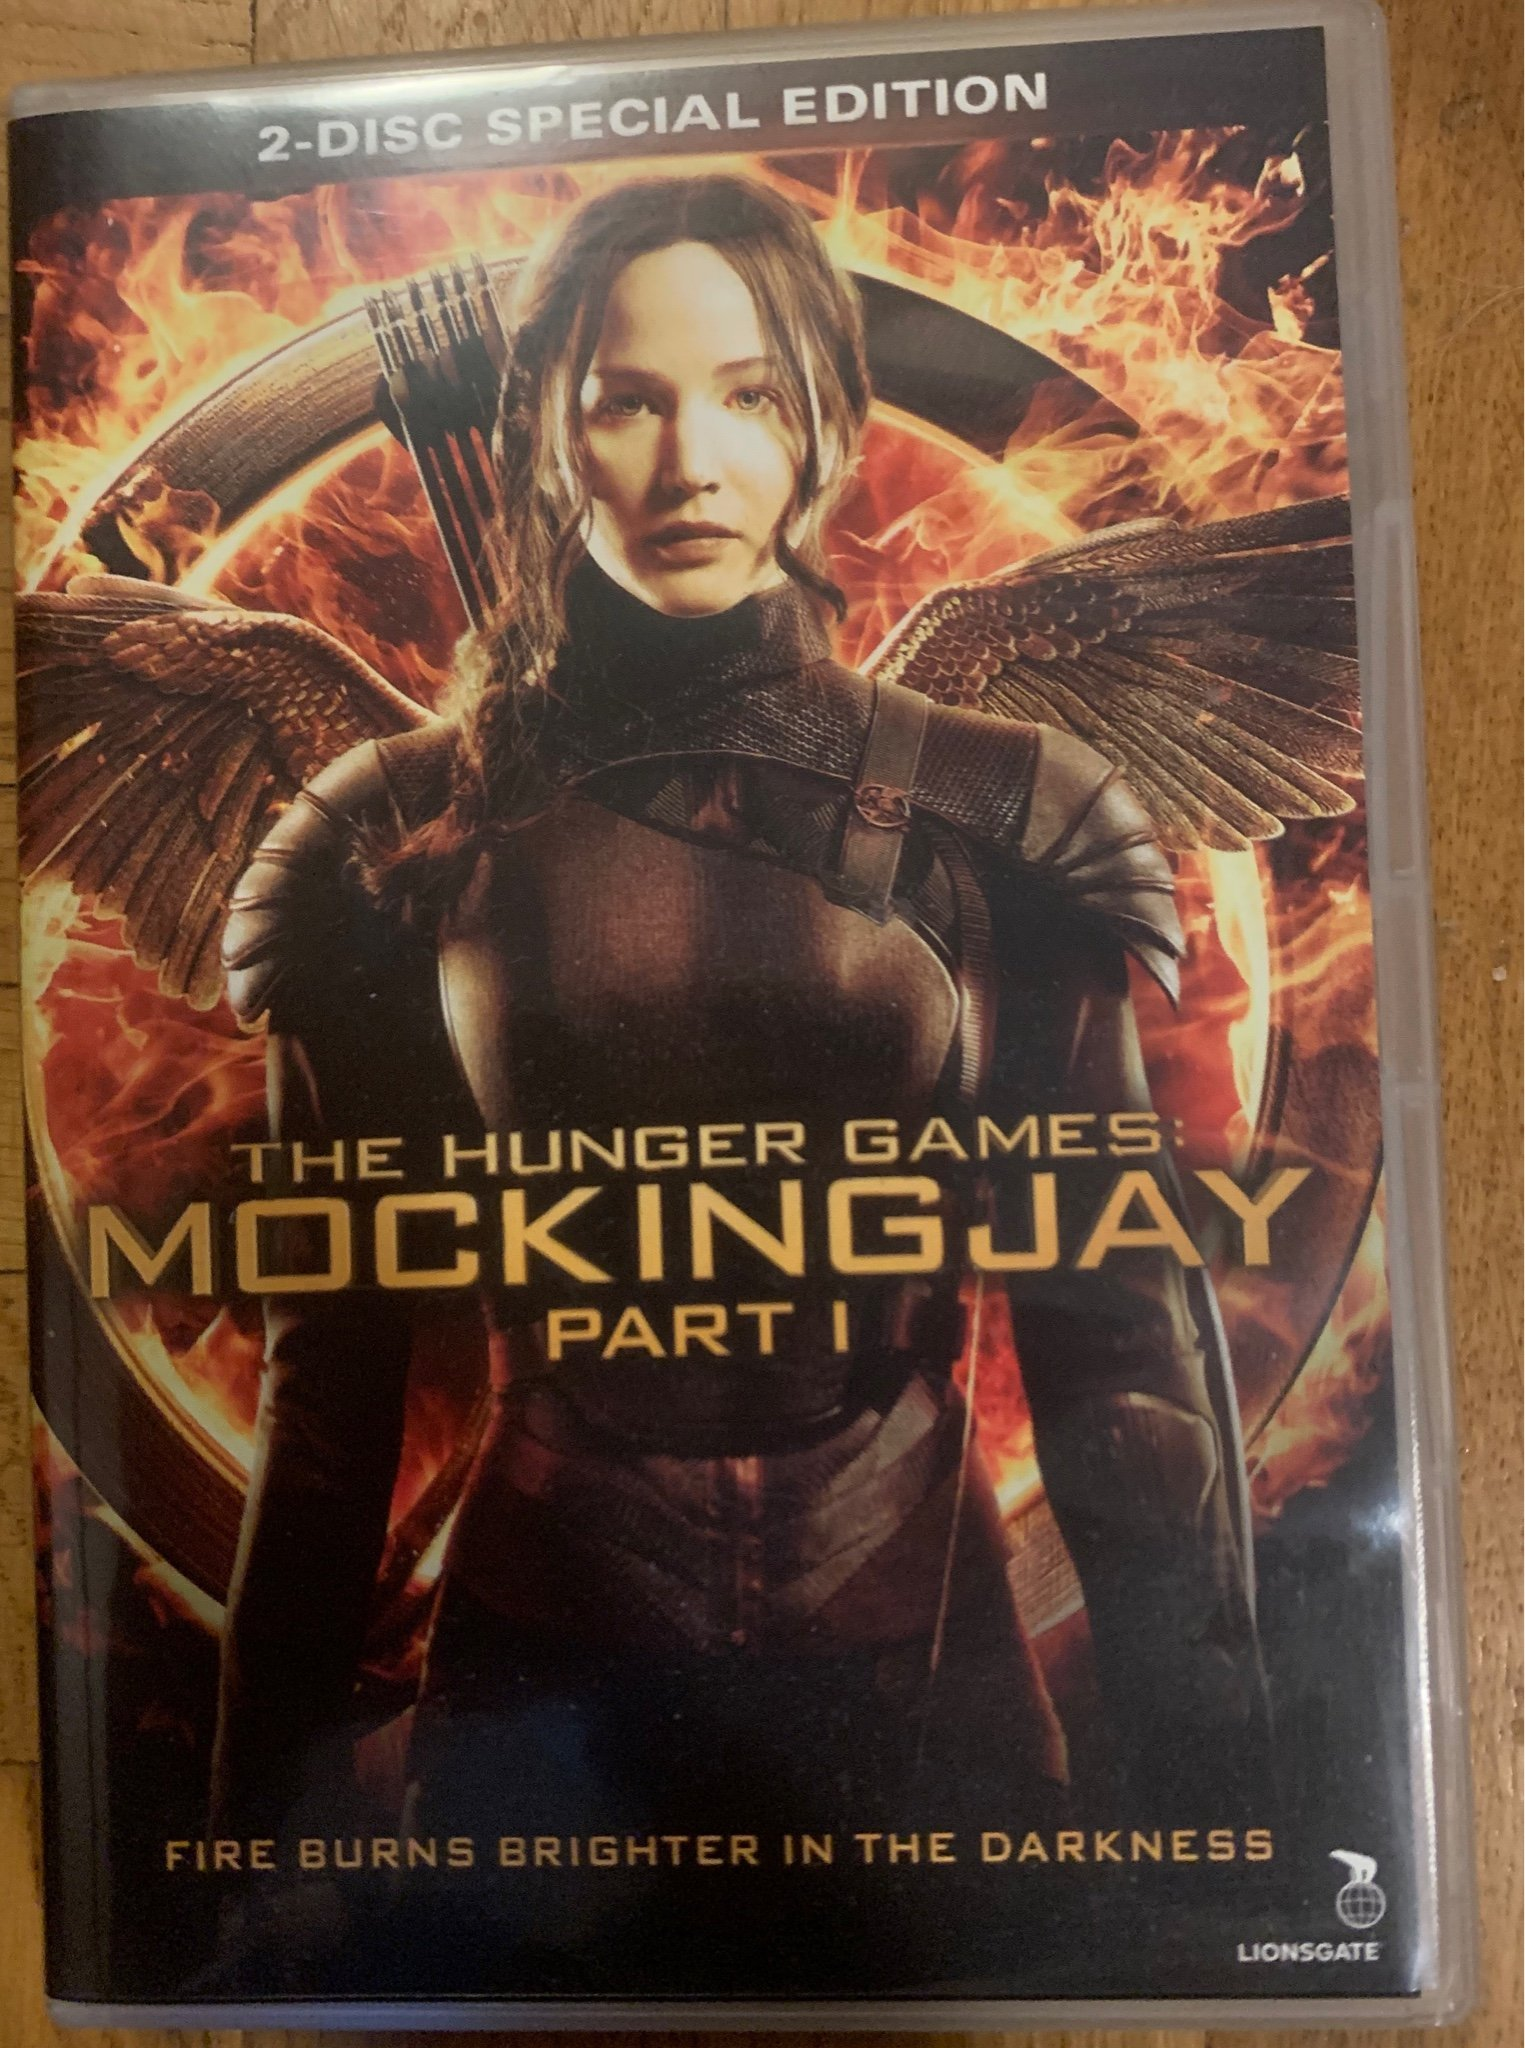 The Hunger Games - Mockingjay Part I DVD